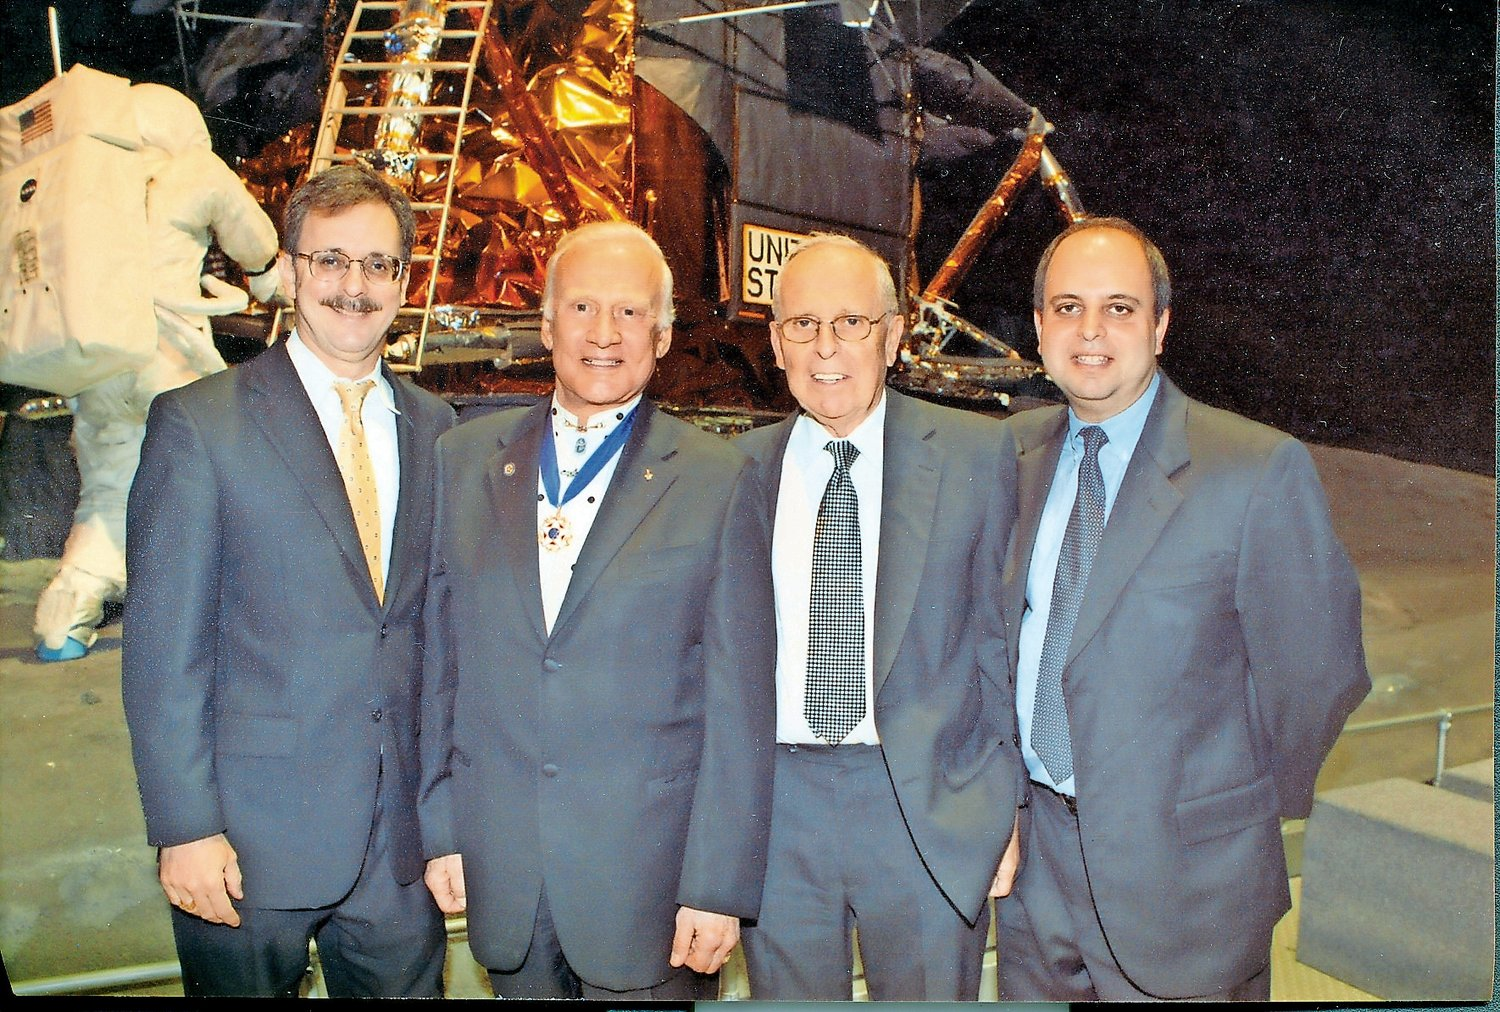 Botwin, second from right, in front of the Cradle of Aviation's Lunar Module with Buzz Aldrin, second from left, and Botwin's sons, Brad, far left, and Neil.